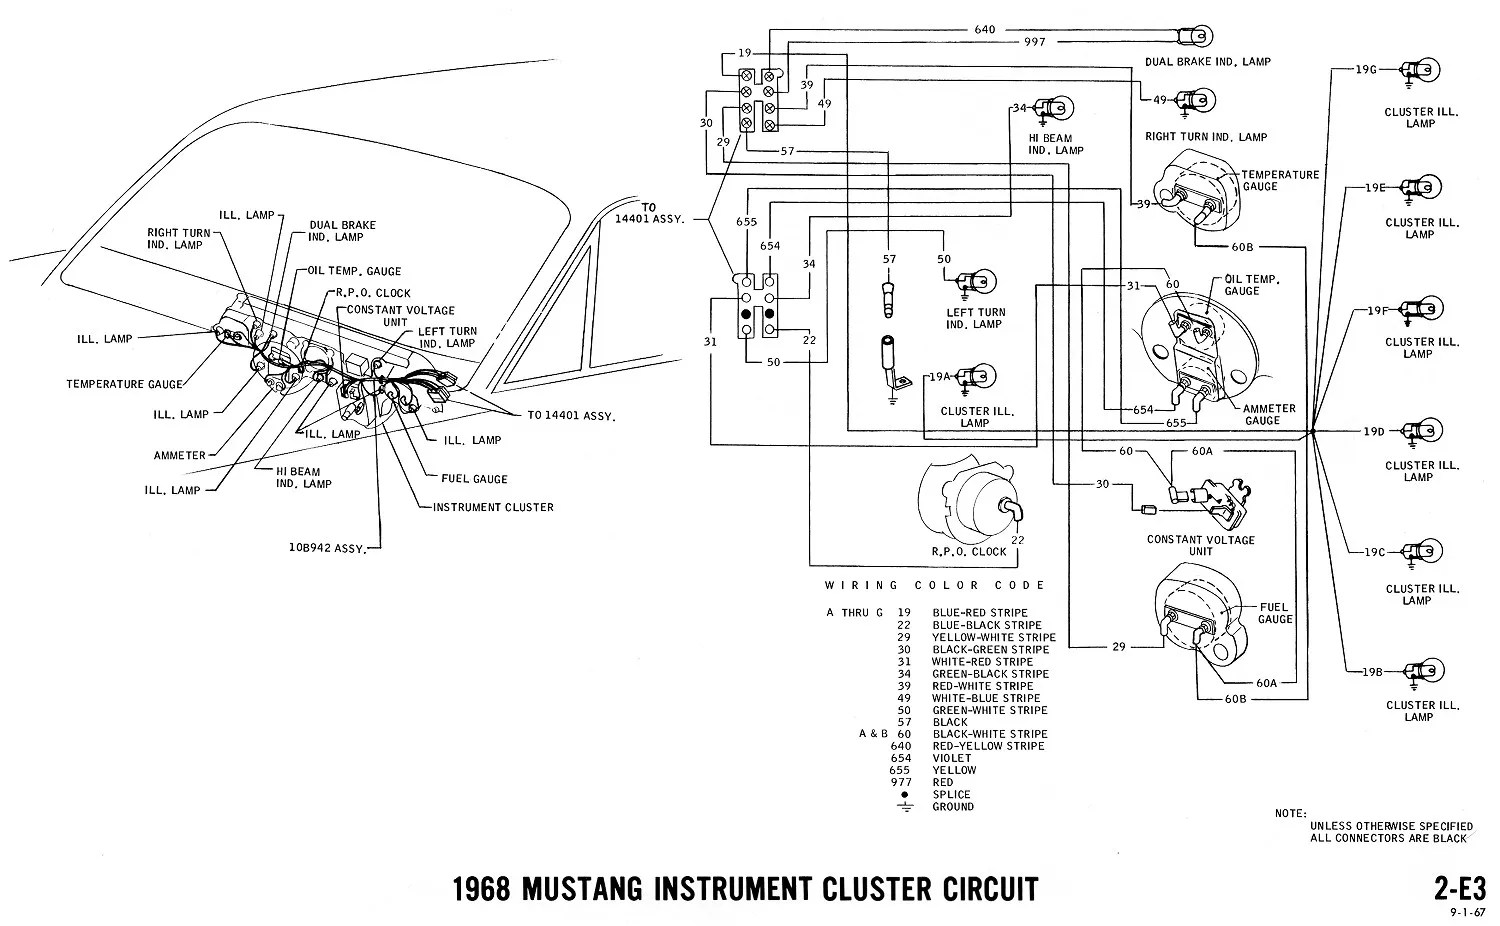 hight resolution of 1968 ford mustang fuse diagram wiring diagram source cadillac escalade fuse box 1968 mustang fuse box